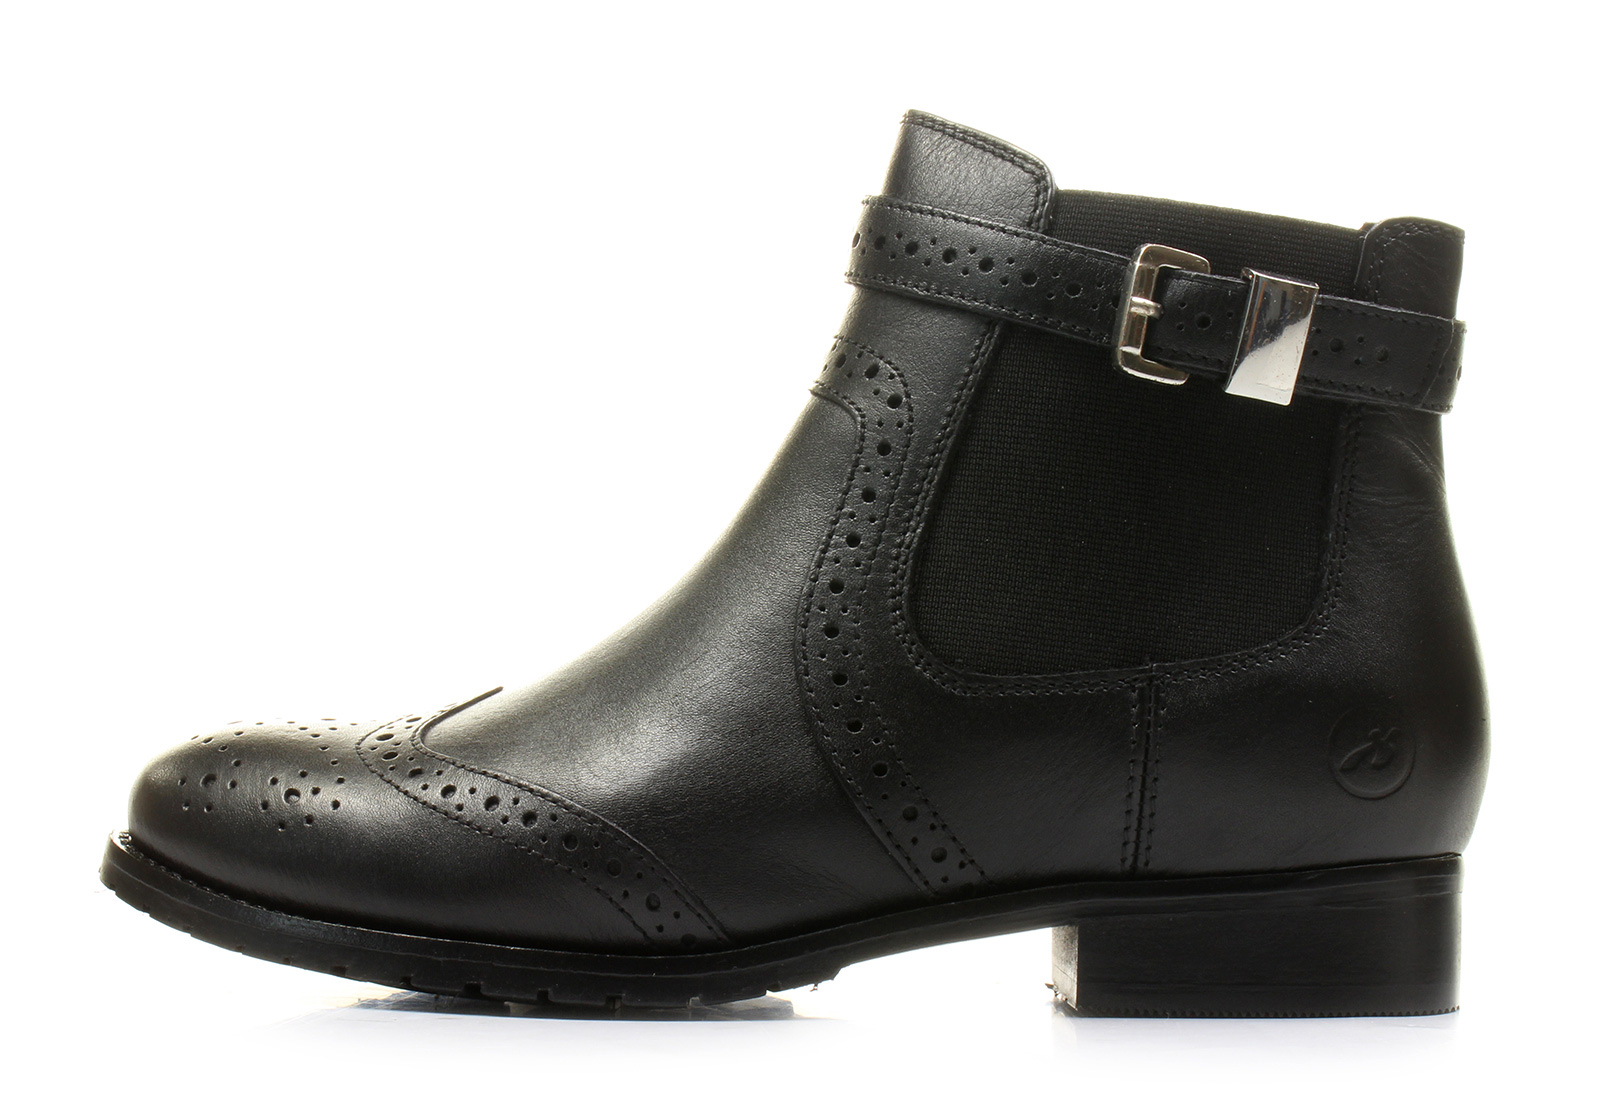 bronx boots marley 44088 m 01 shop for